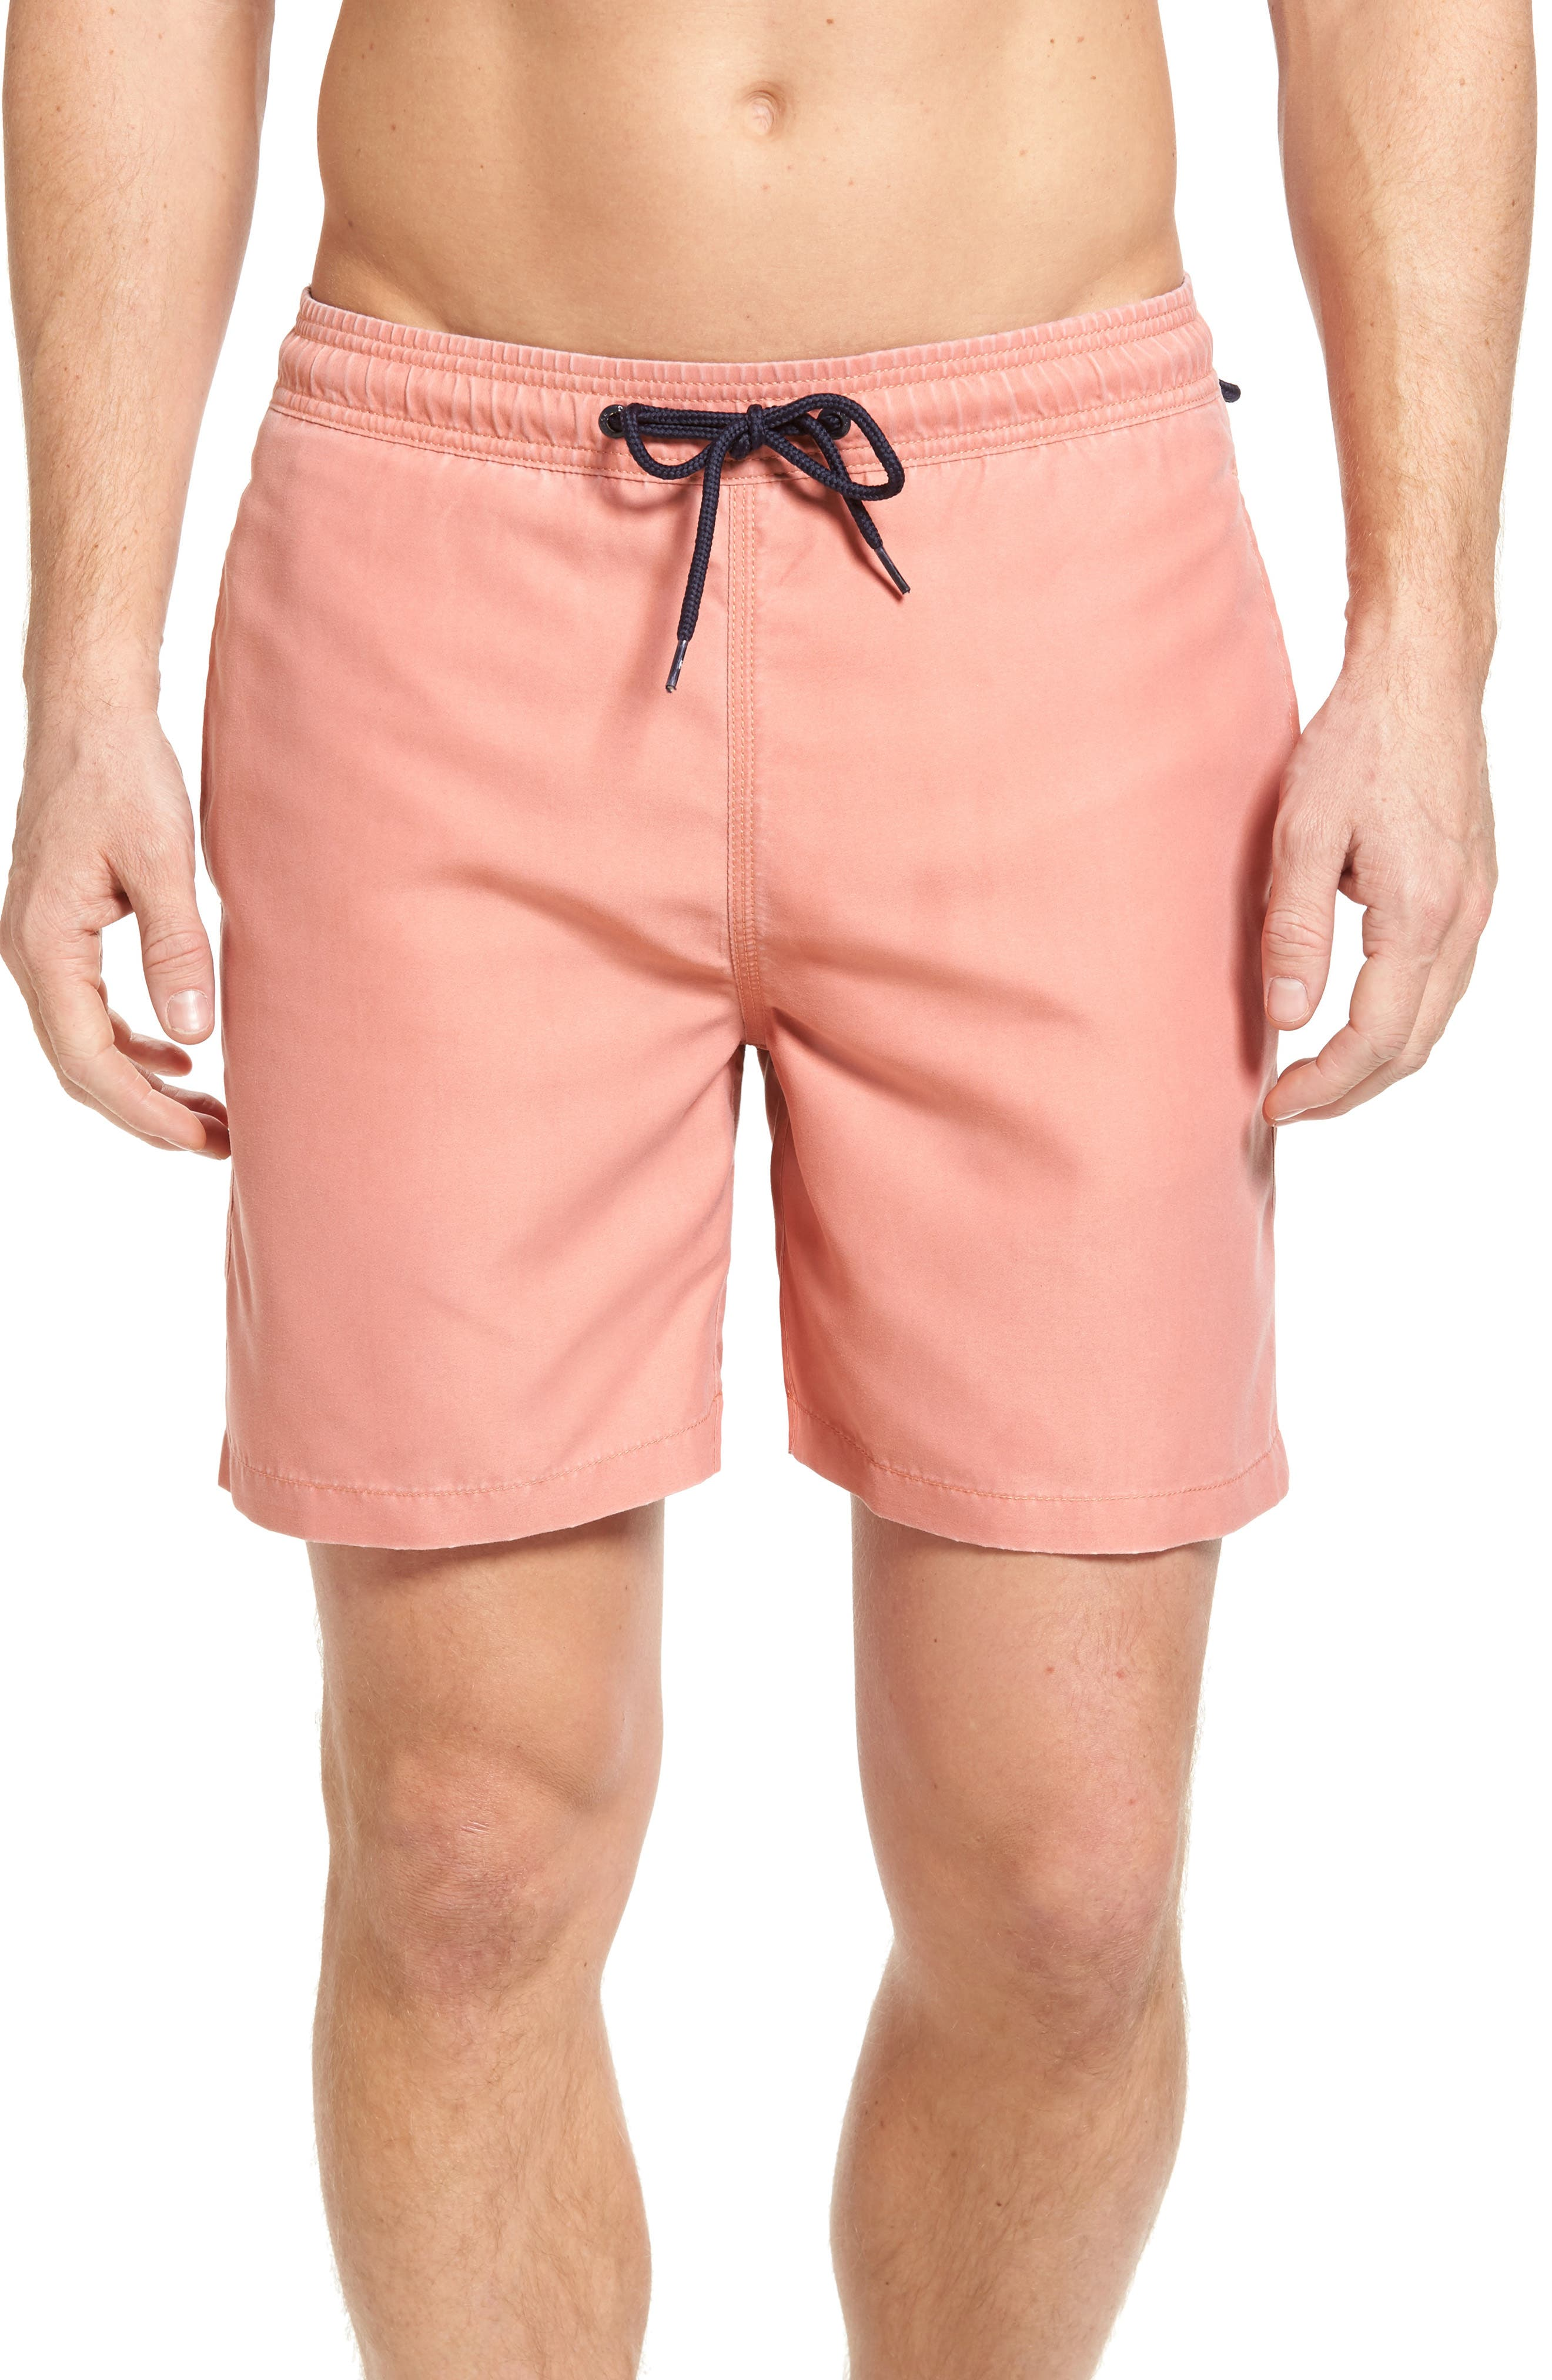 Volley Swim Trunks,                             Main thumbnail 1, color,                             625